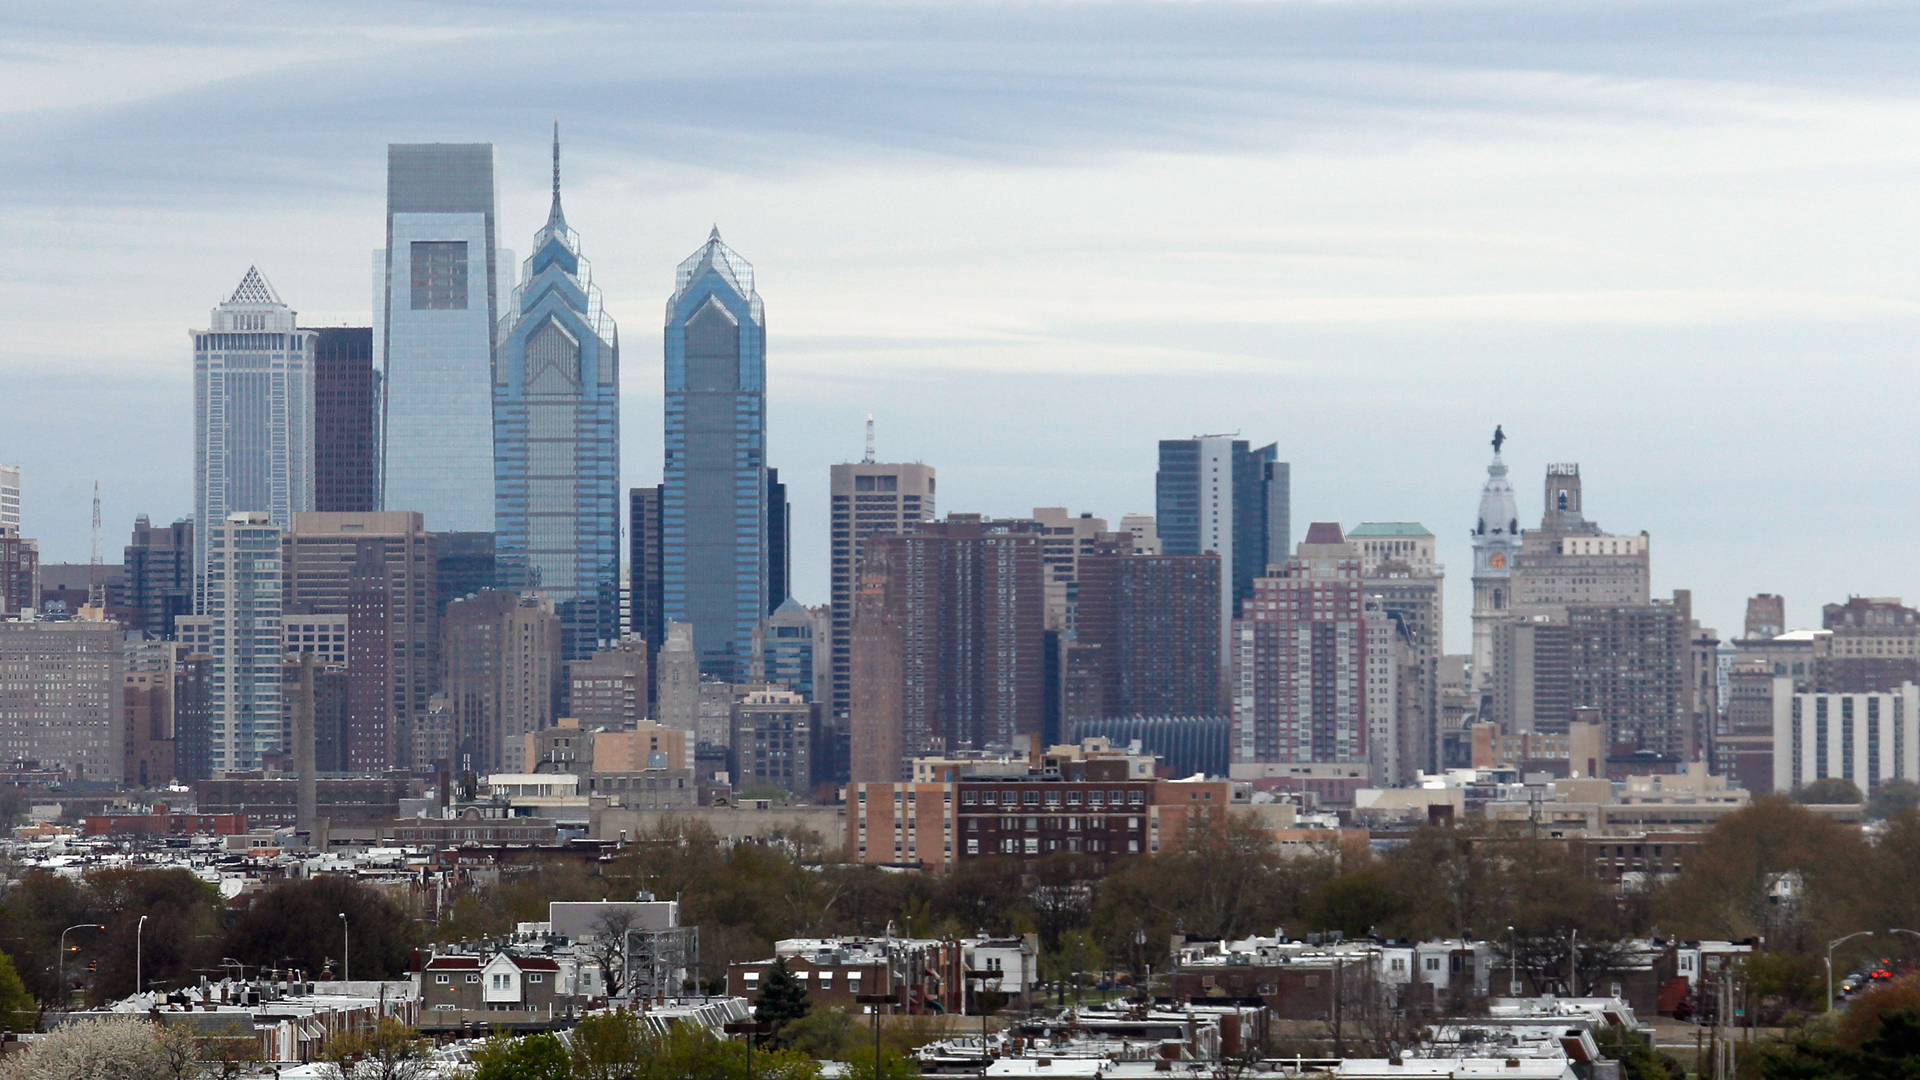 A general view of the Philadelphia city skyline on April 25, 2014.(Credit: Bruce Bennett/Getty Images)